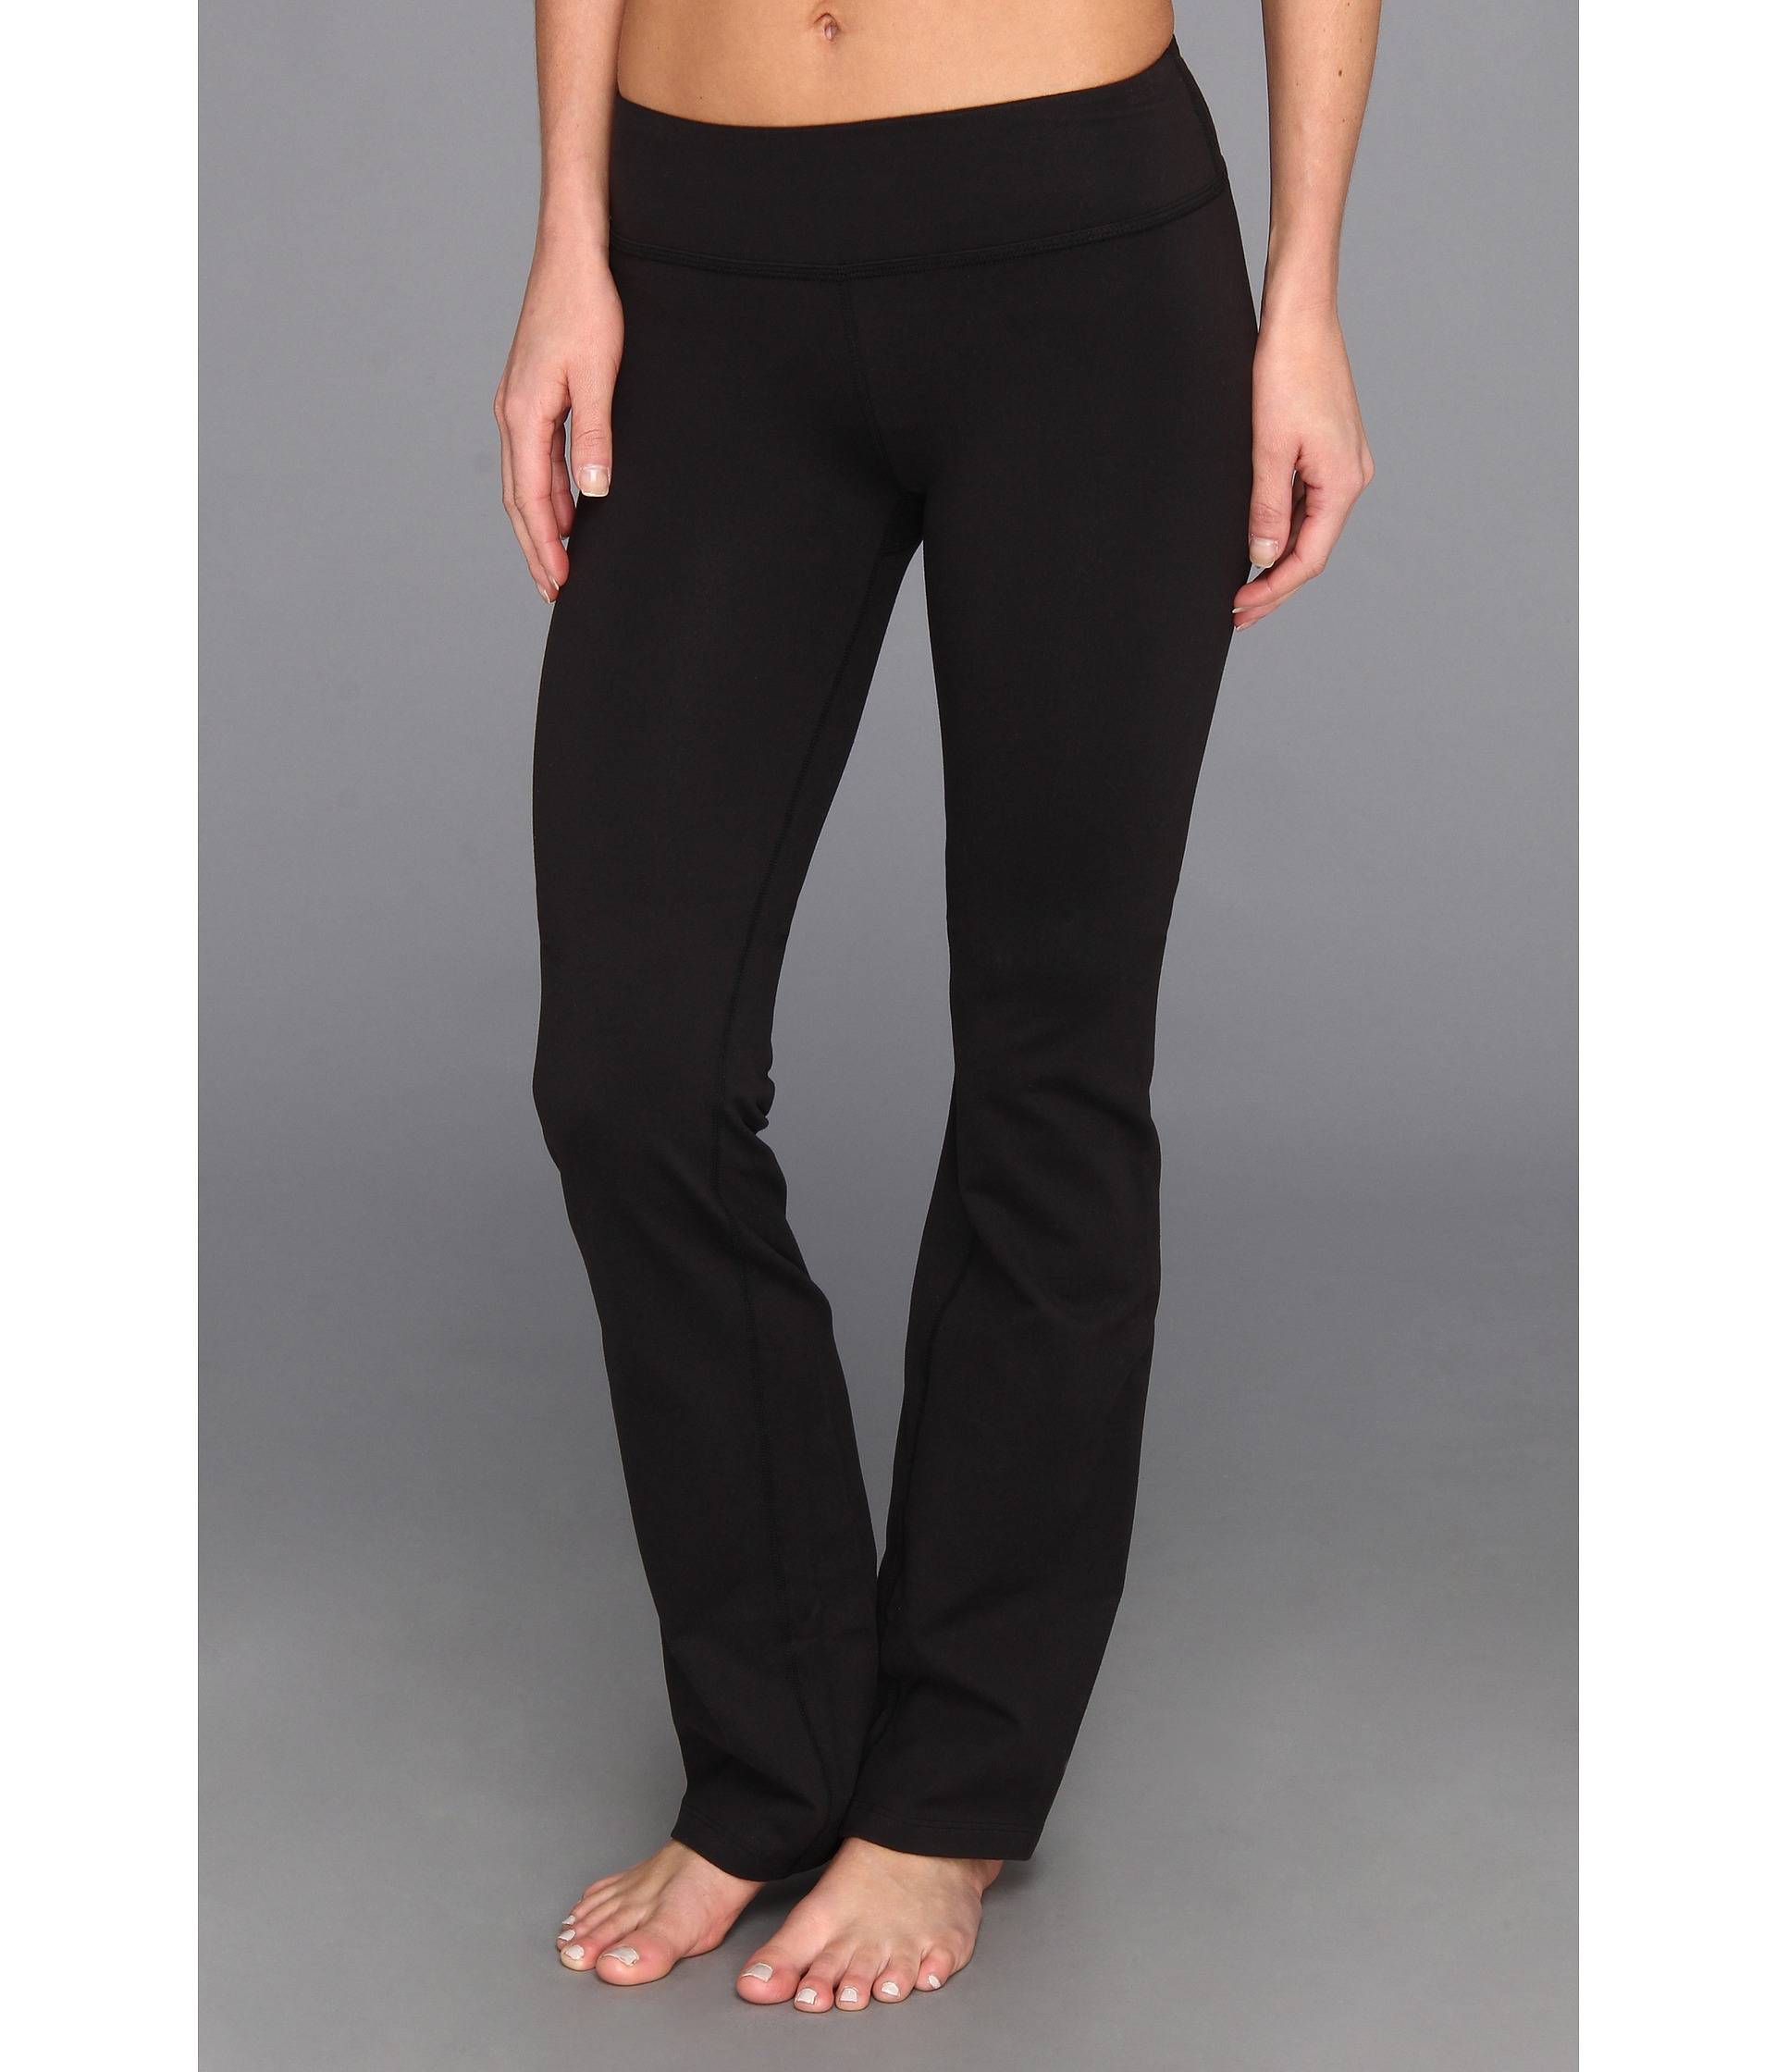 df0a23ccc2 Beyond Yoga Essential Pant Black   Shipped Free at Zappos